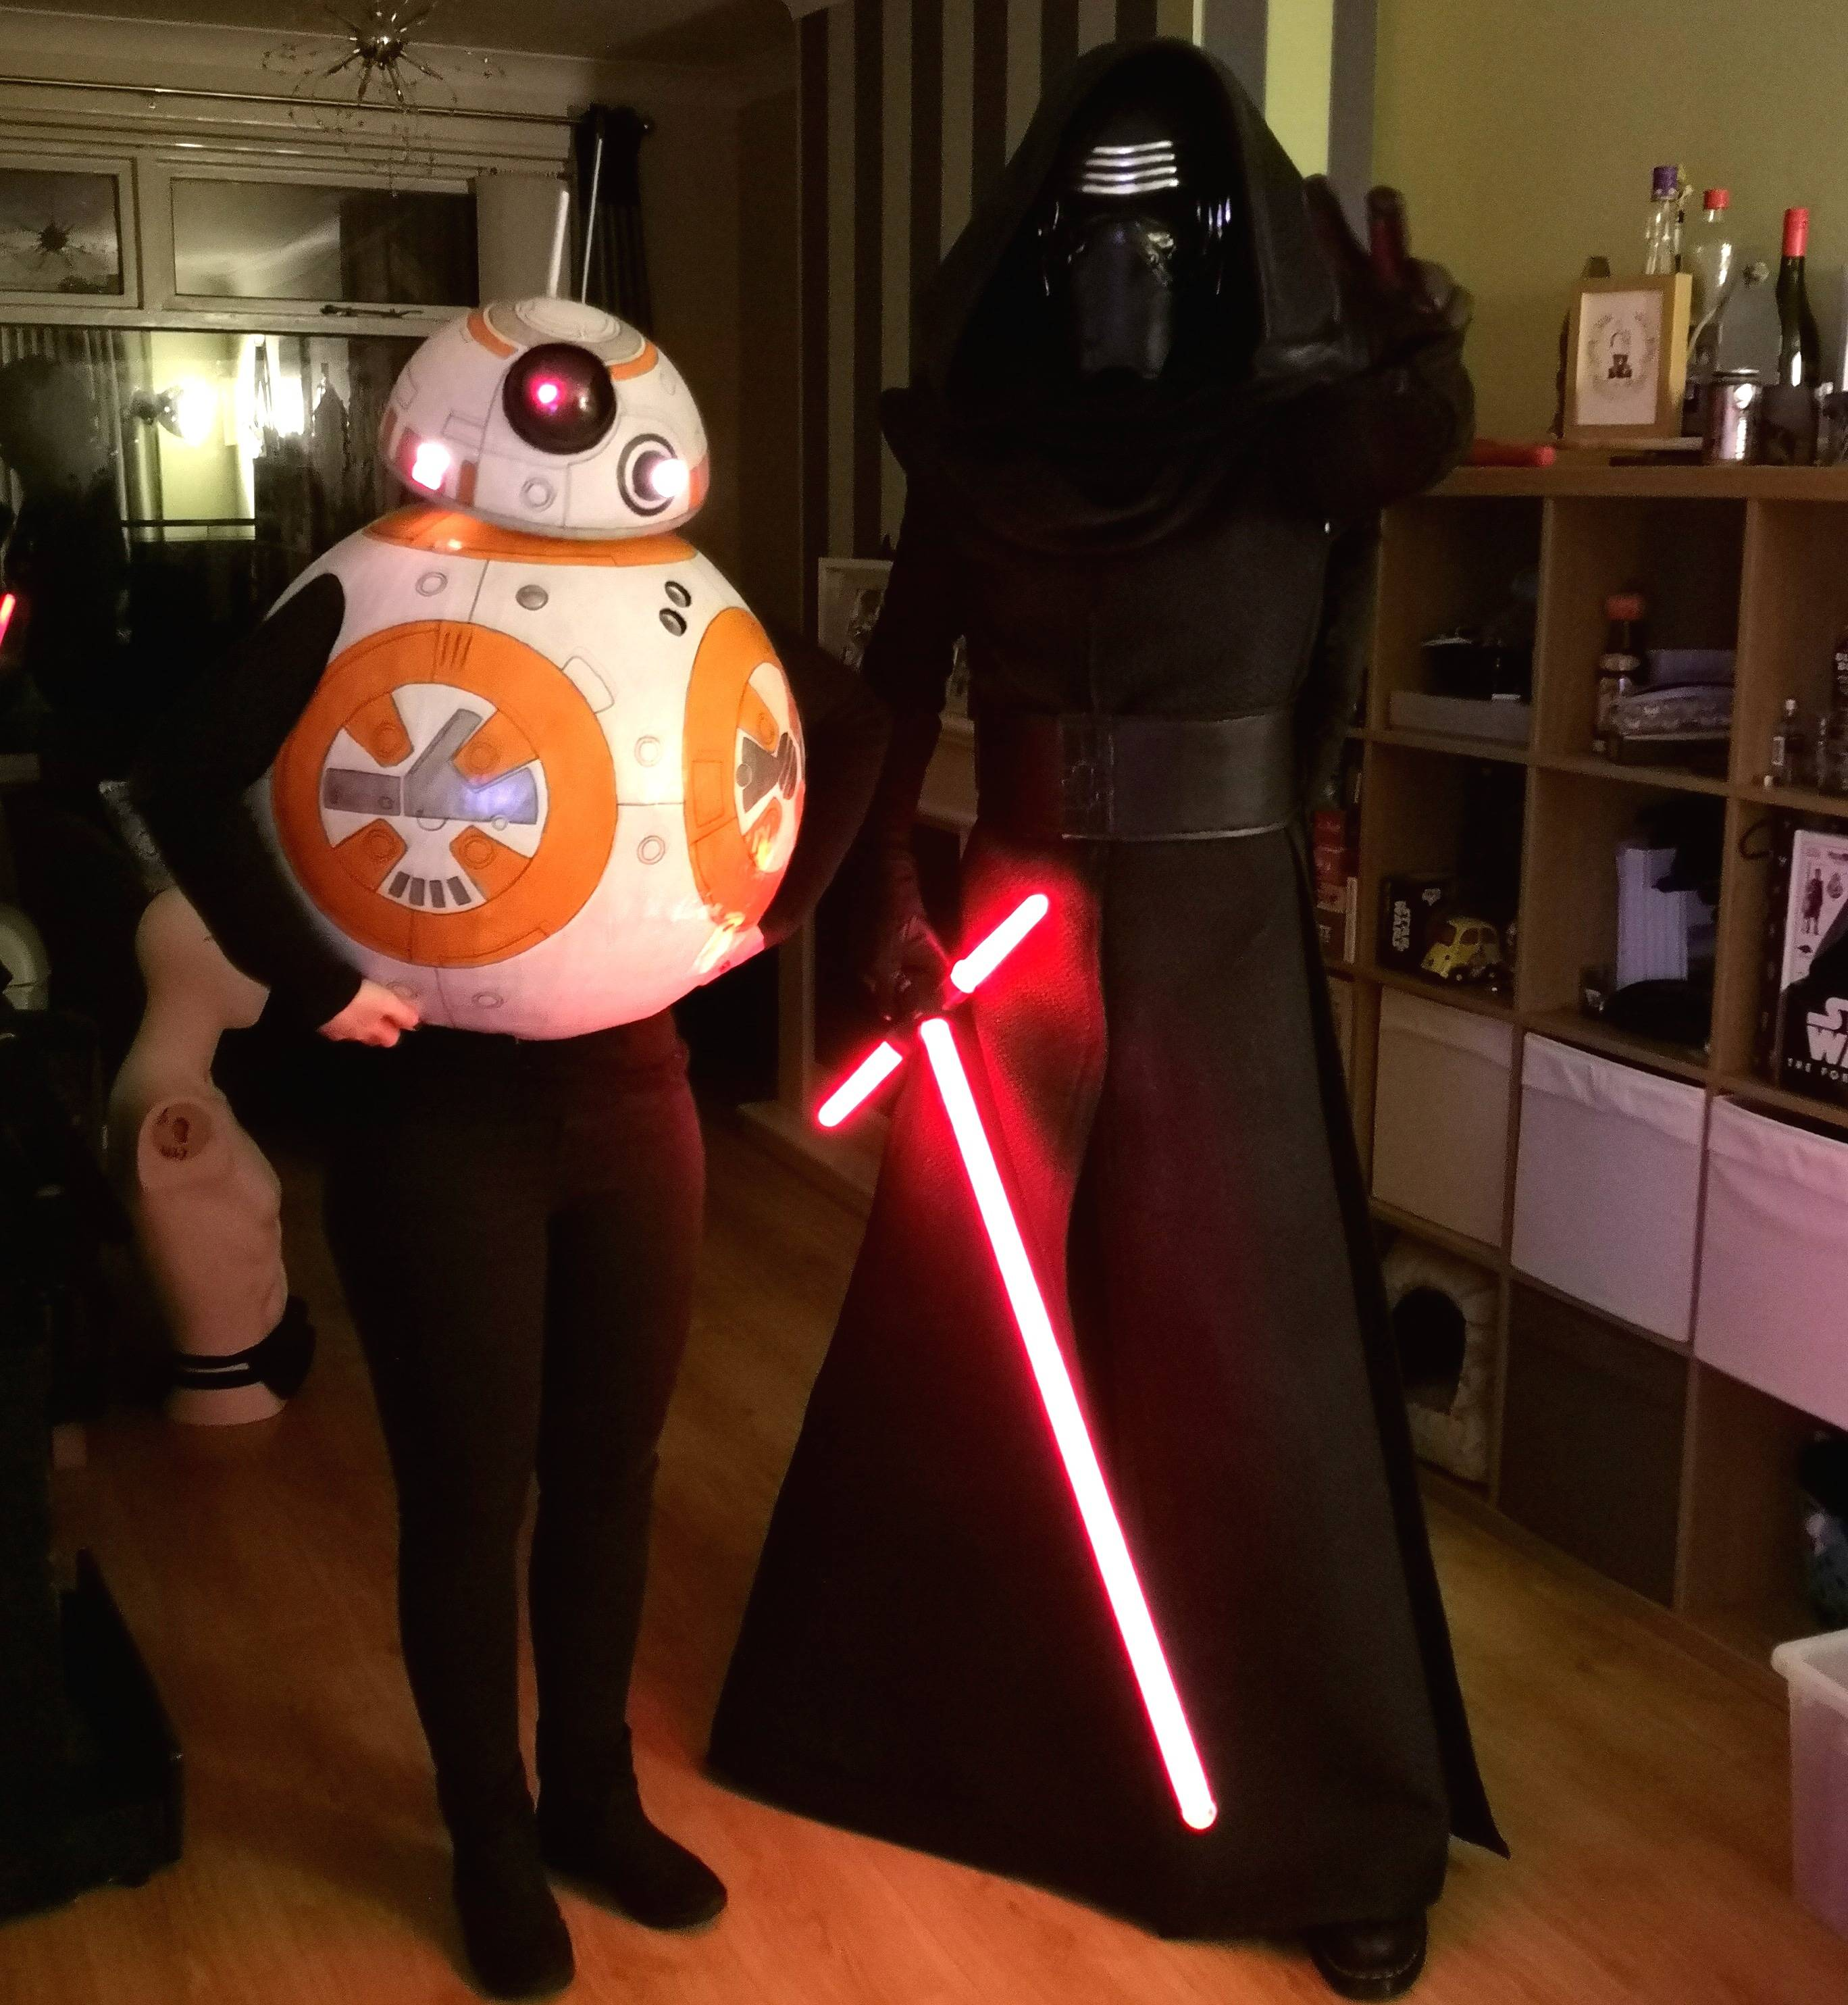 My wife and I dressed as BB8 & Kylo Ren for a Halloween party on Saturday night [Costumes]